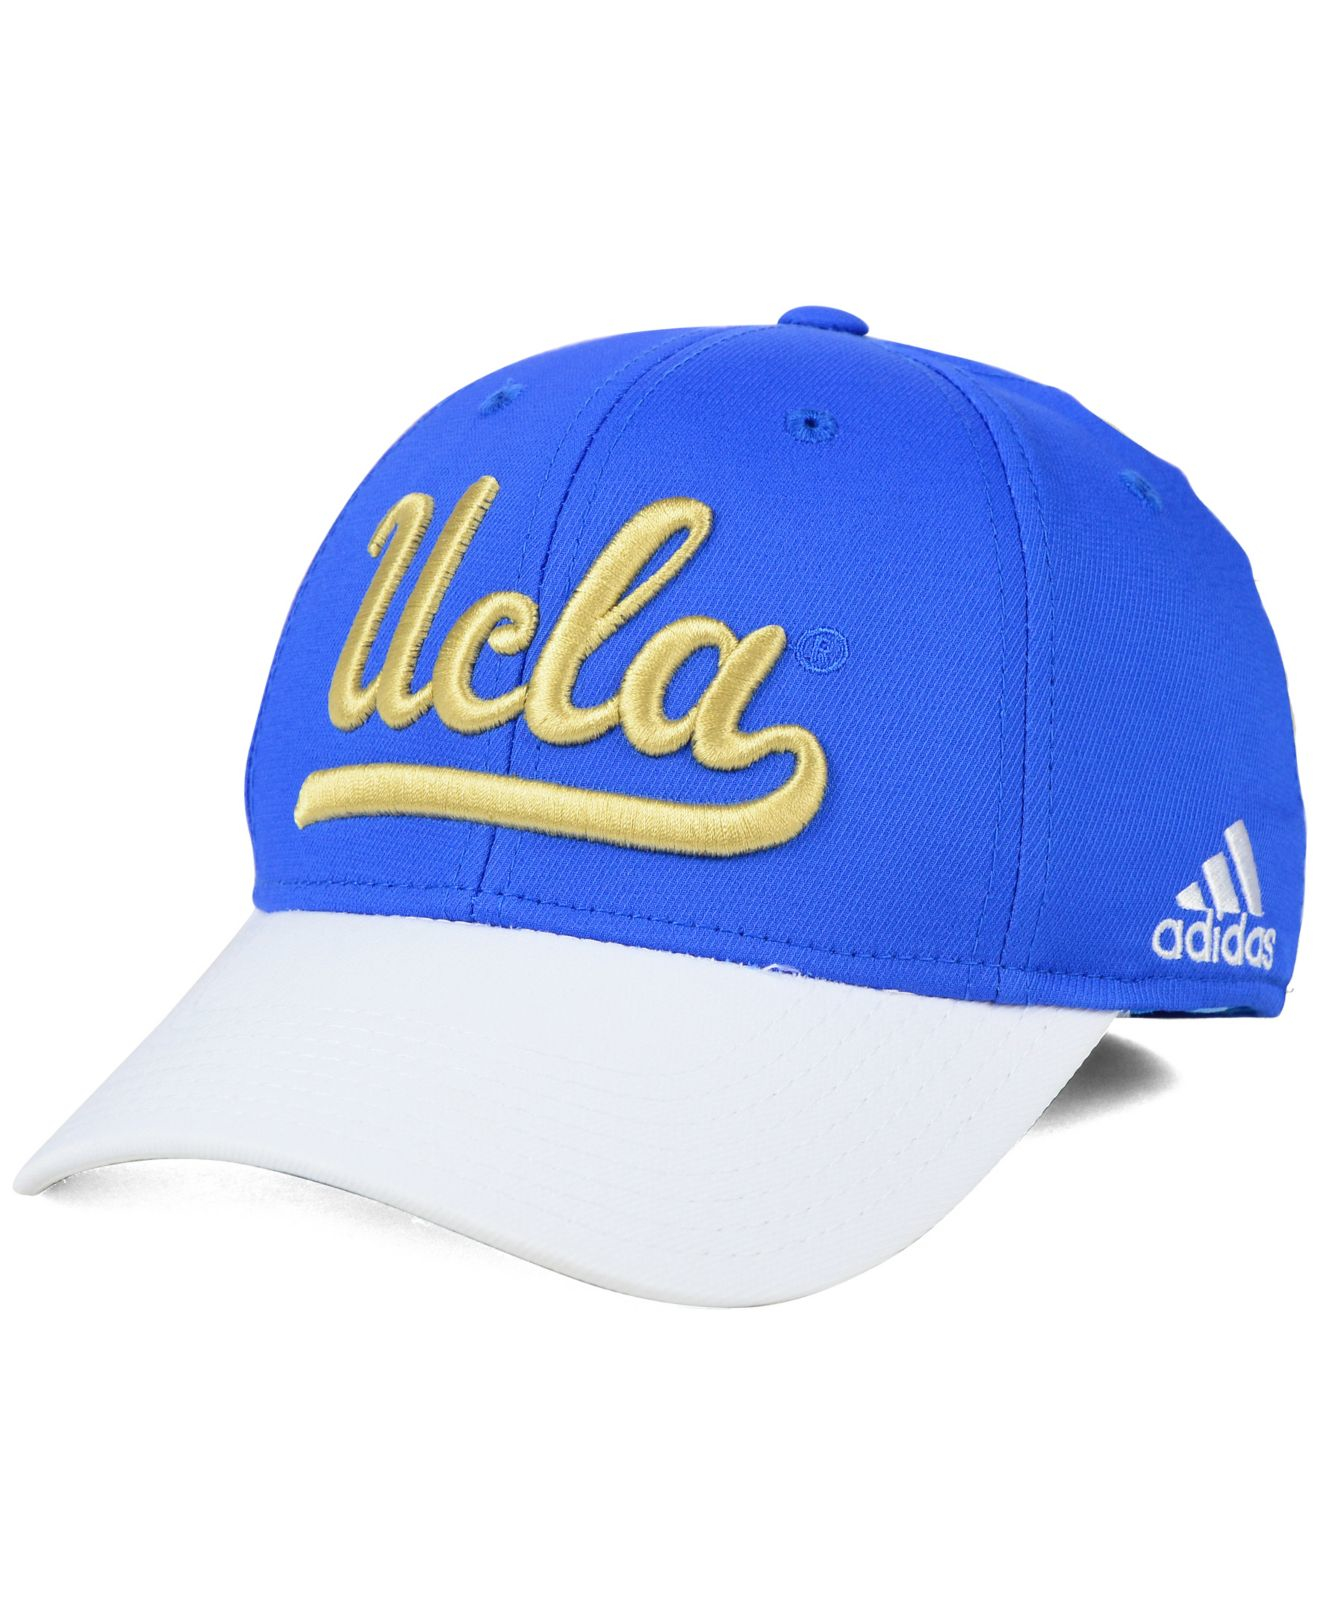 269da07b Lyst - Adidas Originals Ucla Bruins Structured Flex Cap in Blue for Men